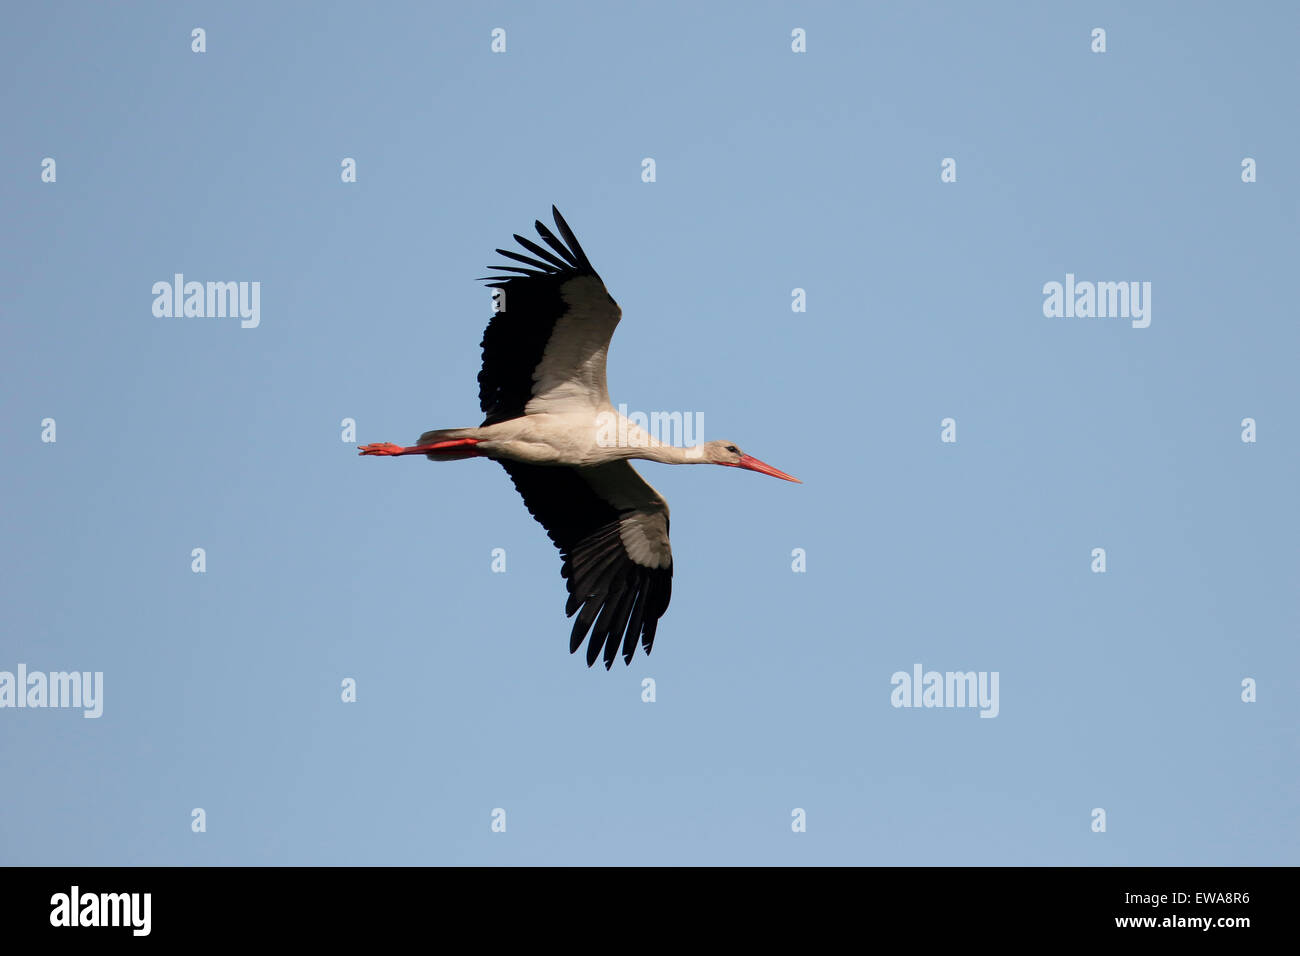 White stork, Ciconia ciconia, single bird in flight, Romania, May 2015 - Stock Image